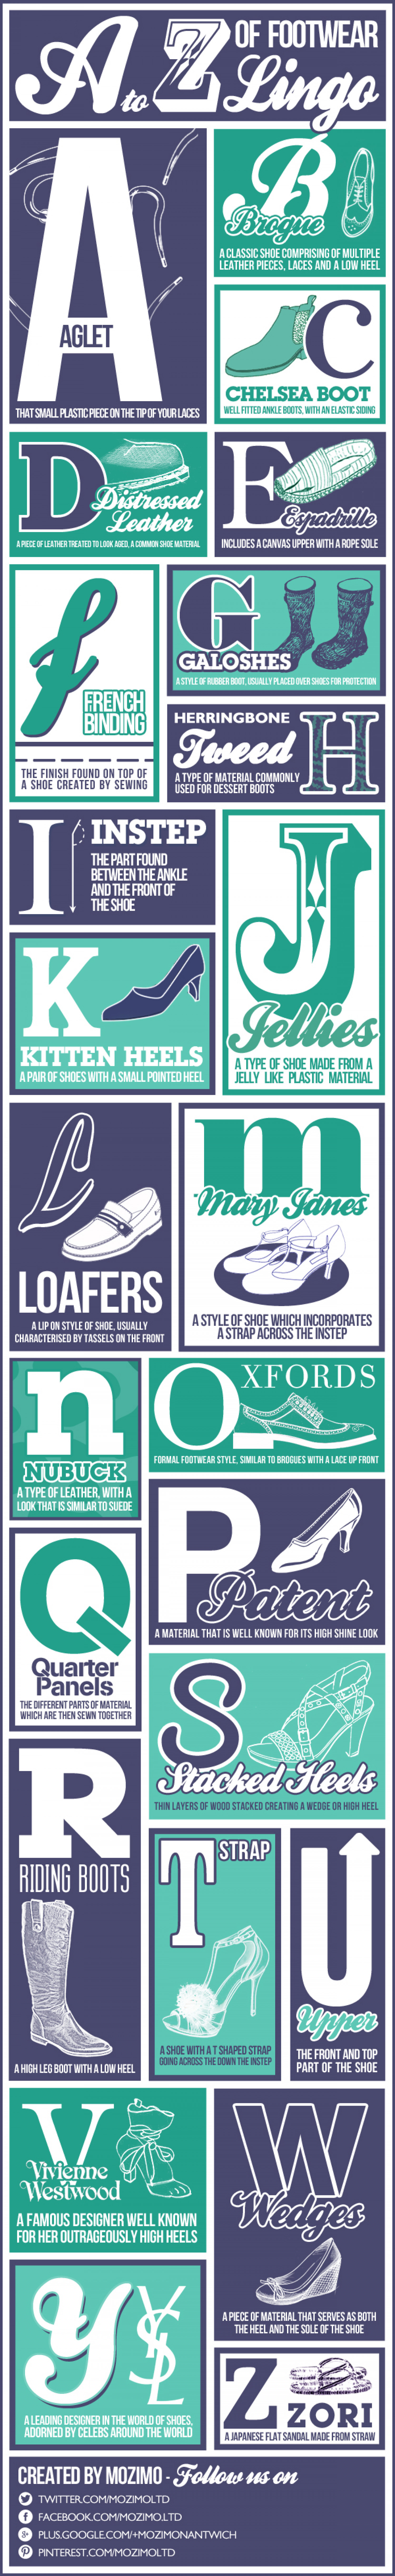 A-Z Footwear Lingo Infographic